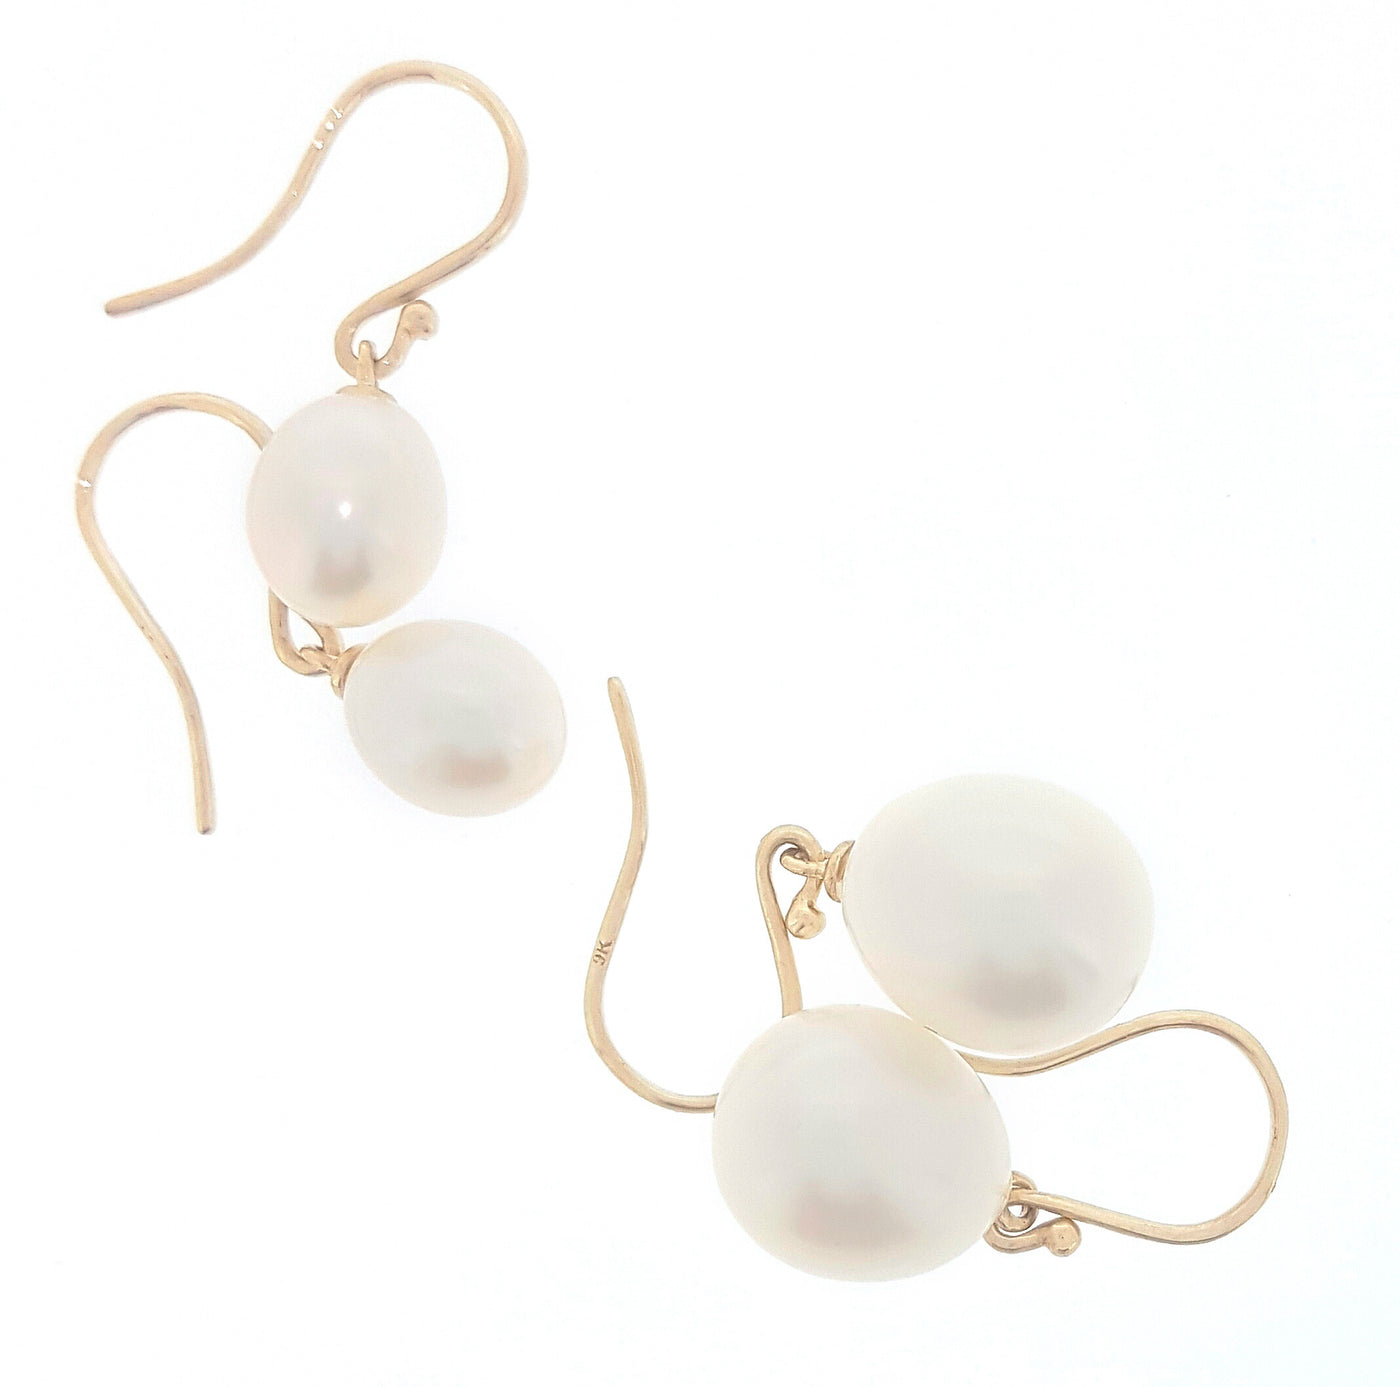 Pearl Earrings 'Pearl Drop' White 9ct - The Courthouse Collection